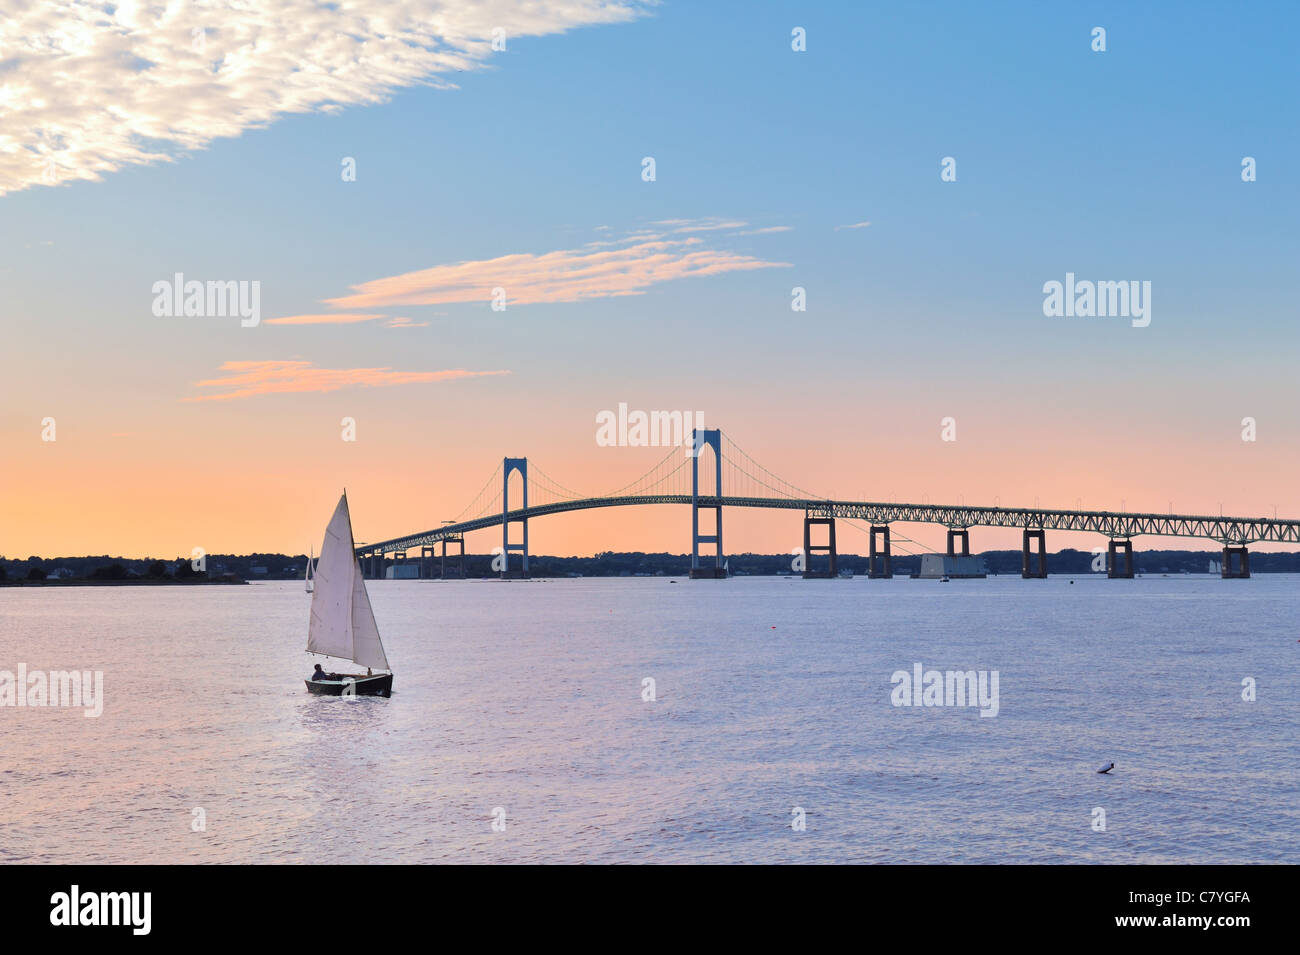 newport-sunset-with-newport-bridge-sailboats-newport-rhode-island-C7YGFA.jpg